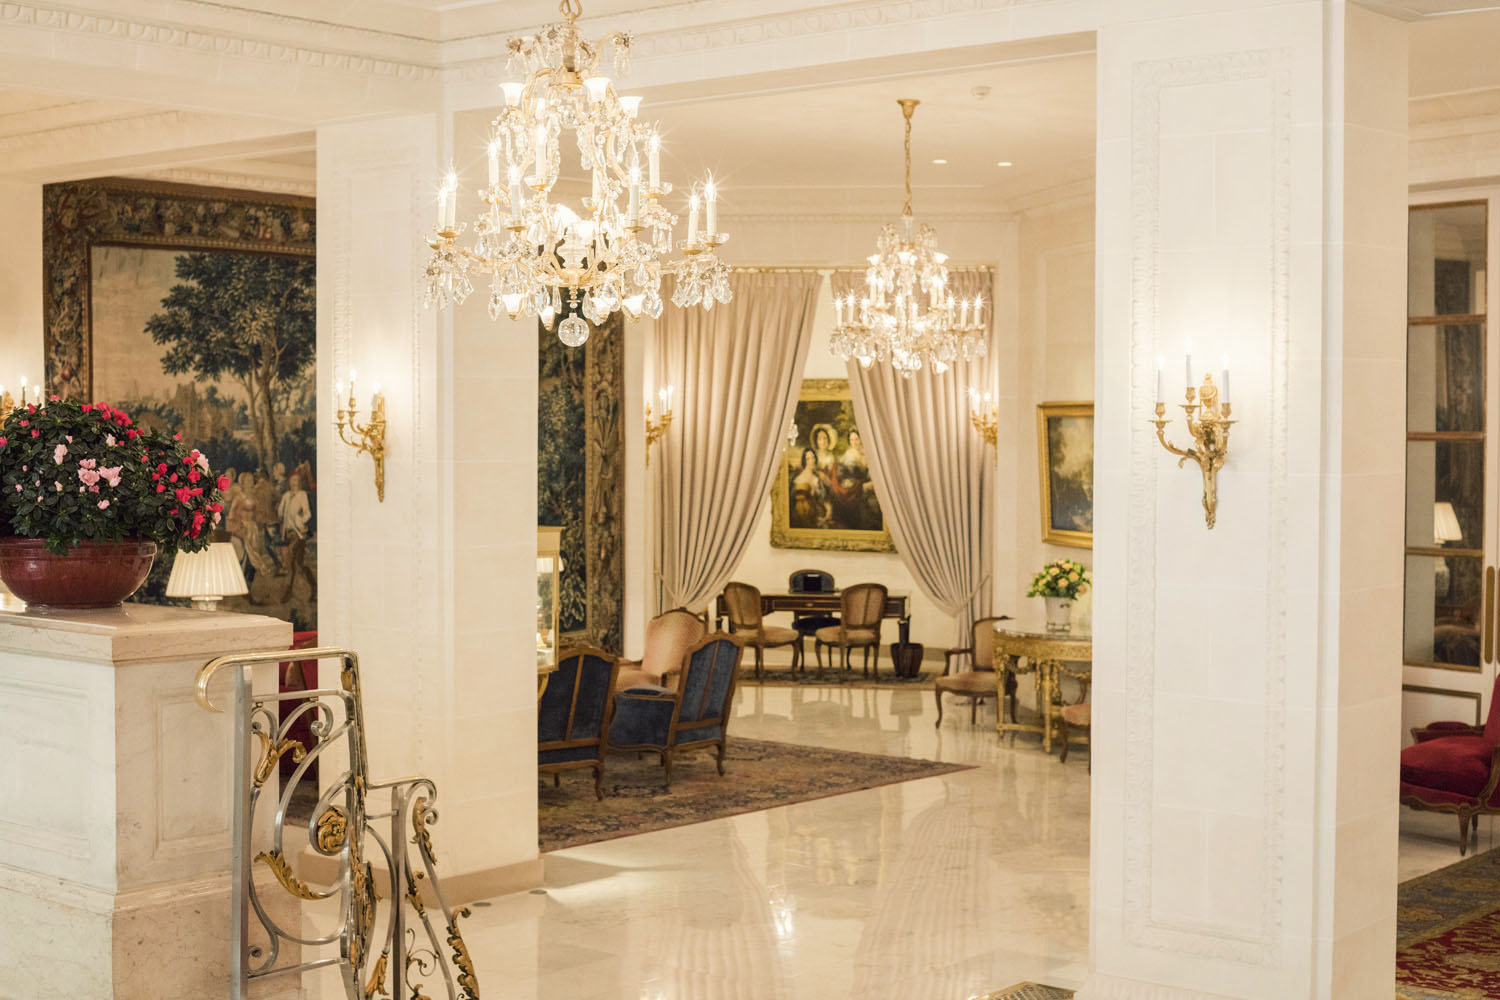 A stay at the historic Le Bristol Hotel Paris.